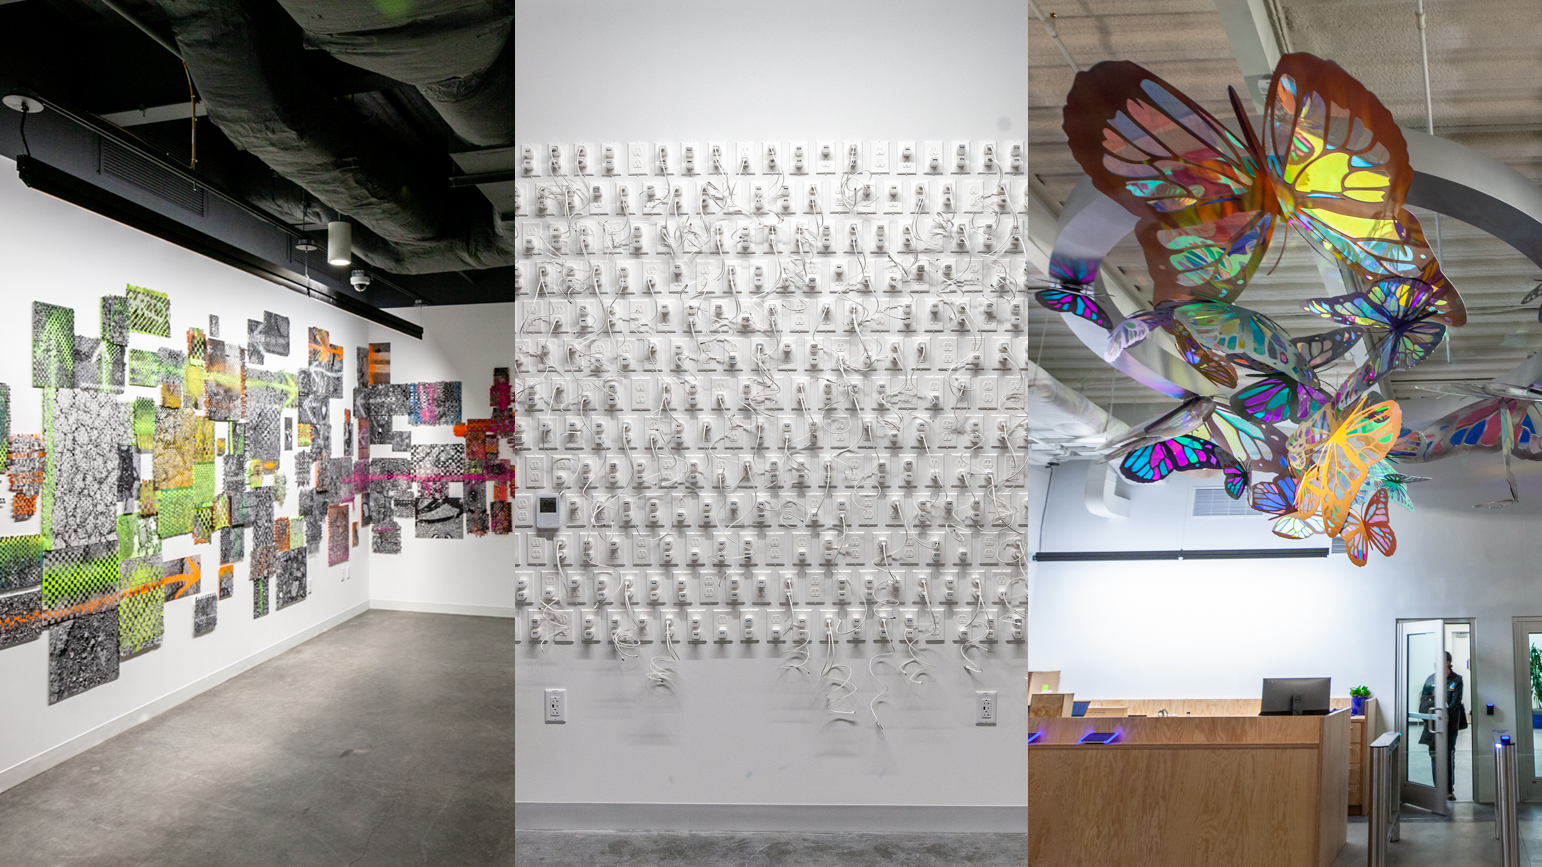 Three installations at Facebook in Pittsburgh: abstracted photographs of pavement, iPhone chargers made of paper, and iridescent butterflies